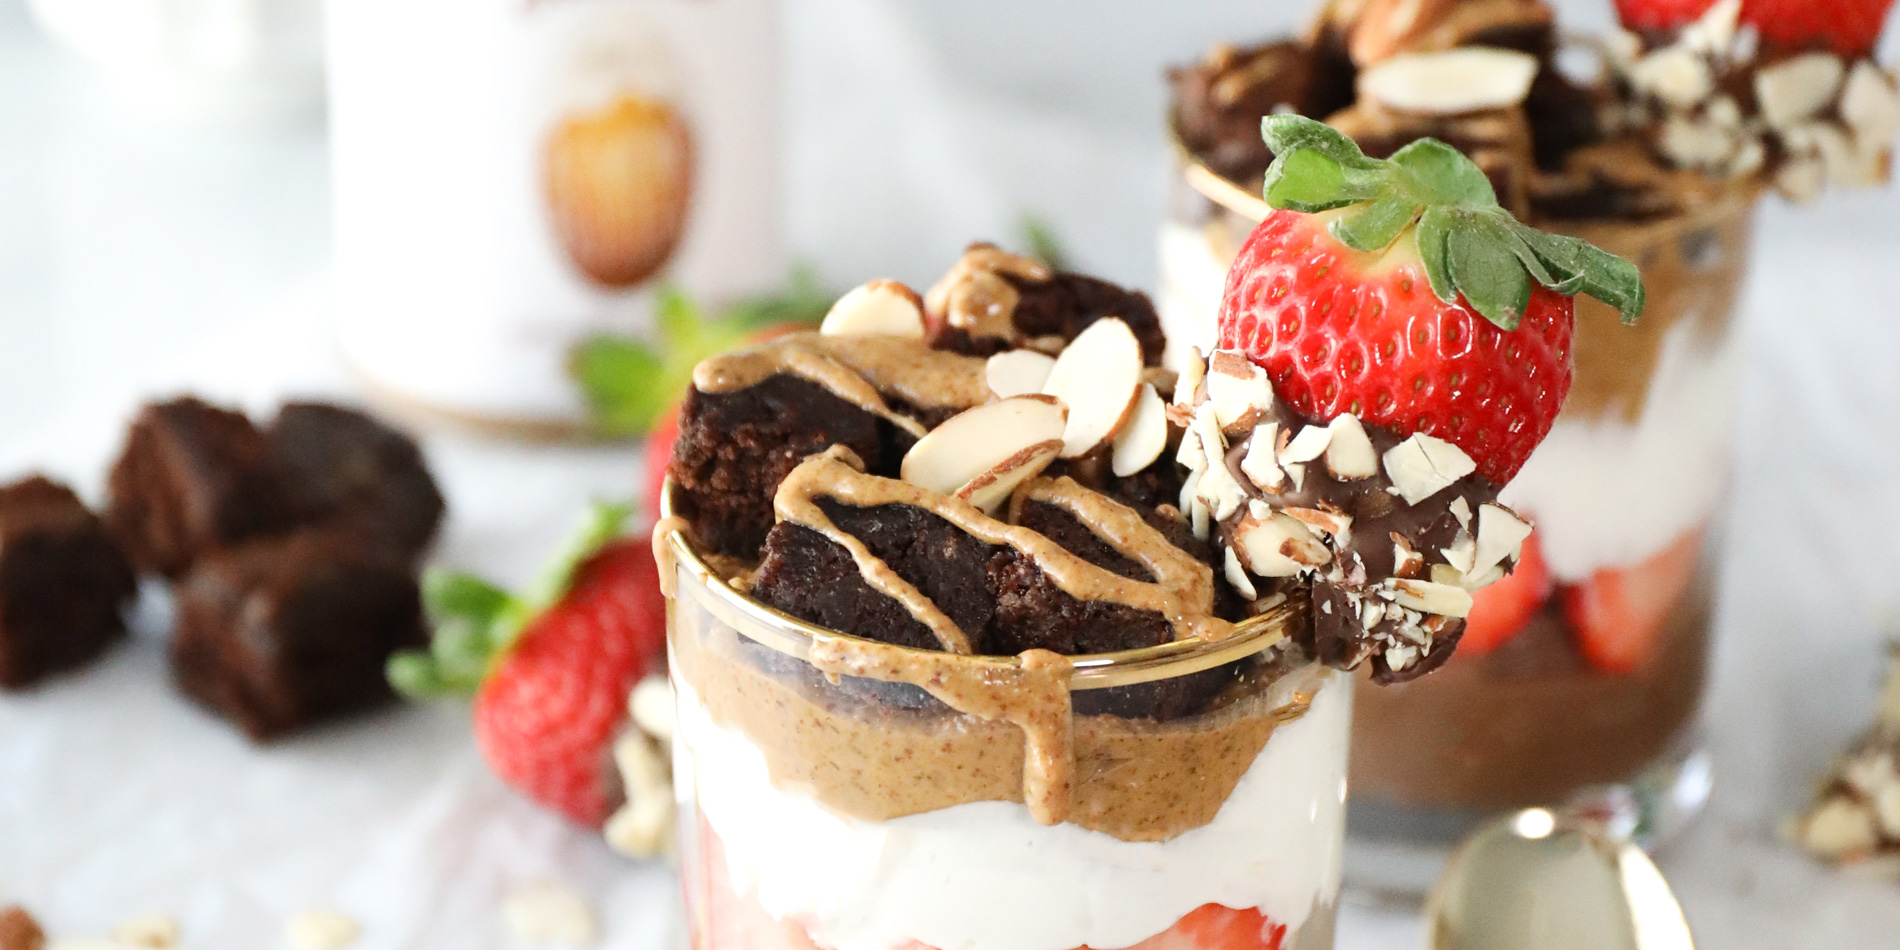 Chocolate Covered Strawberry and Almond Butter Parfait with gold spoons and chocolate fudge chunks in a white tabletop